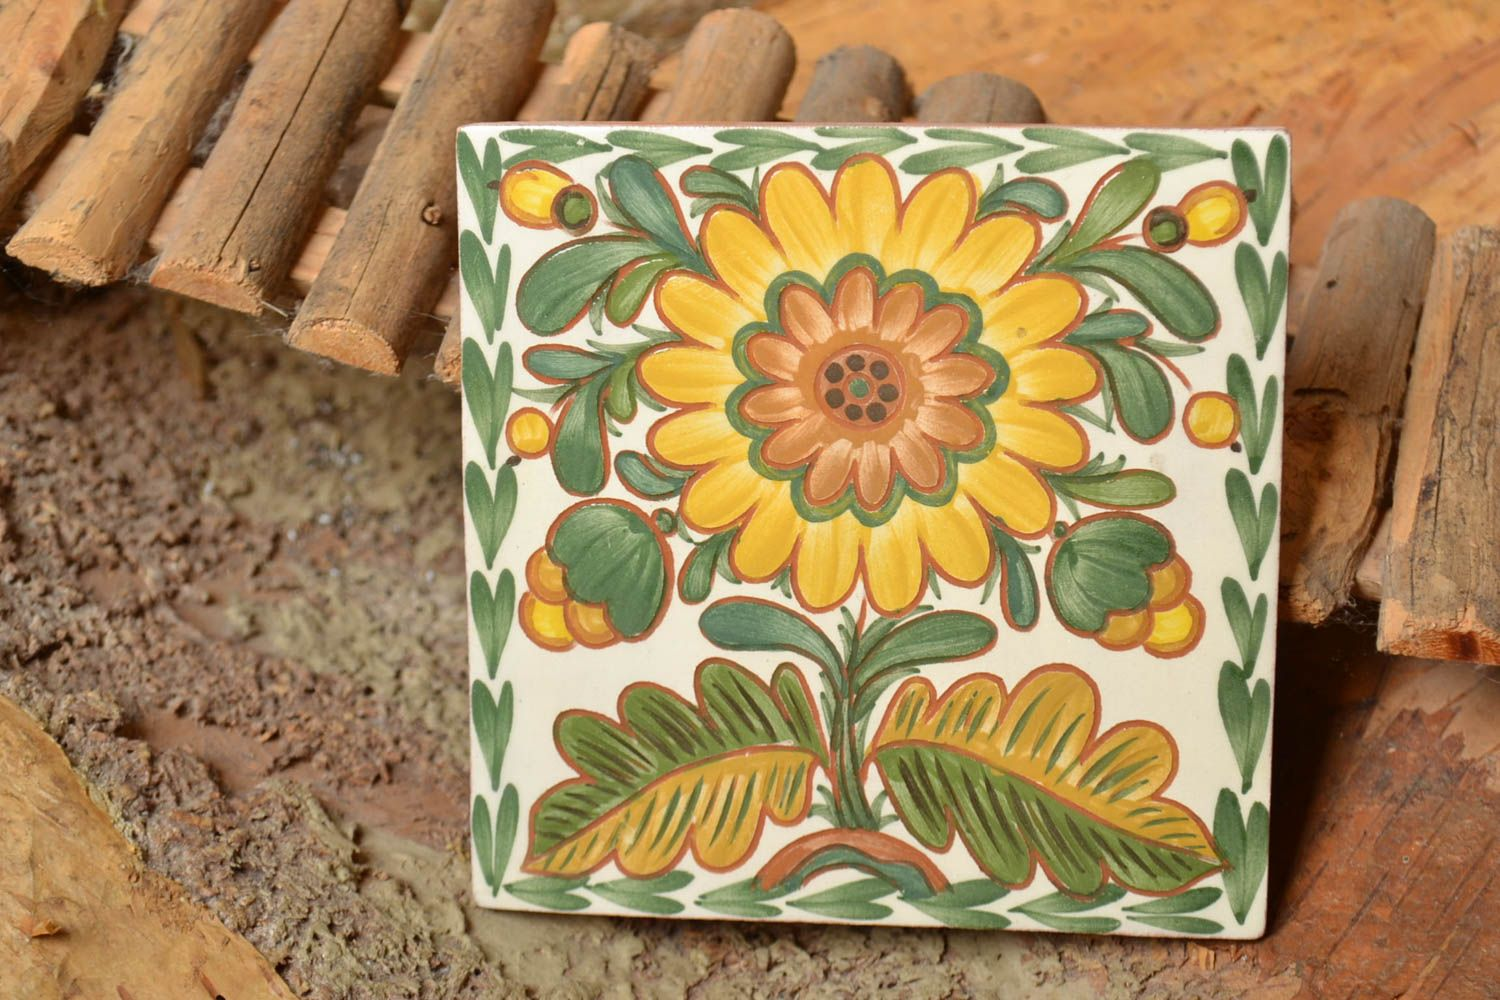 MADEHEART > Handmade decorative ceramic tiles painted with engobes ...